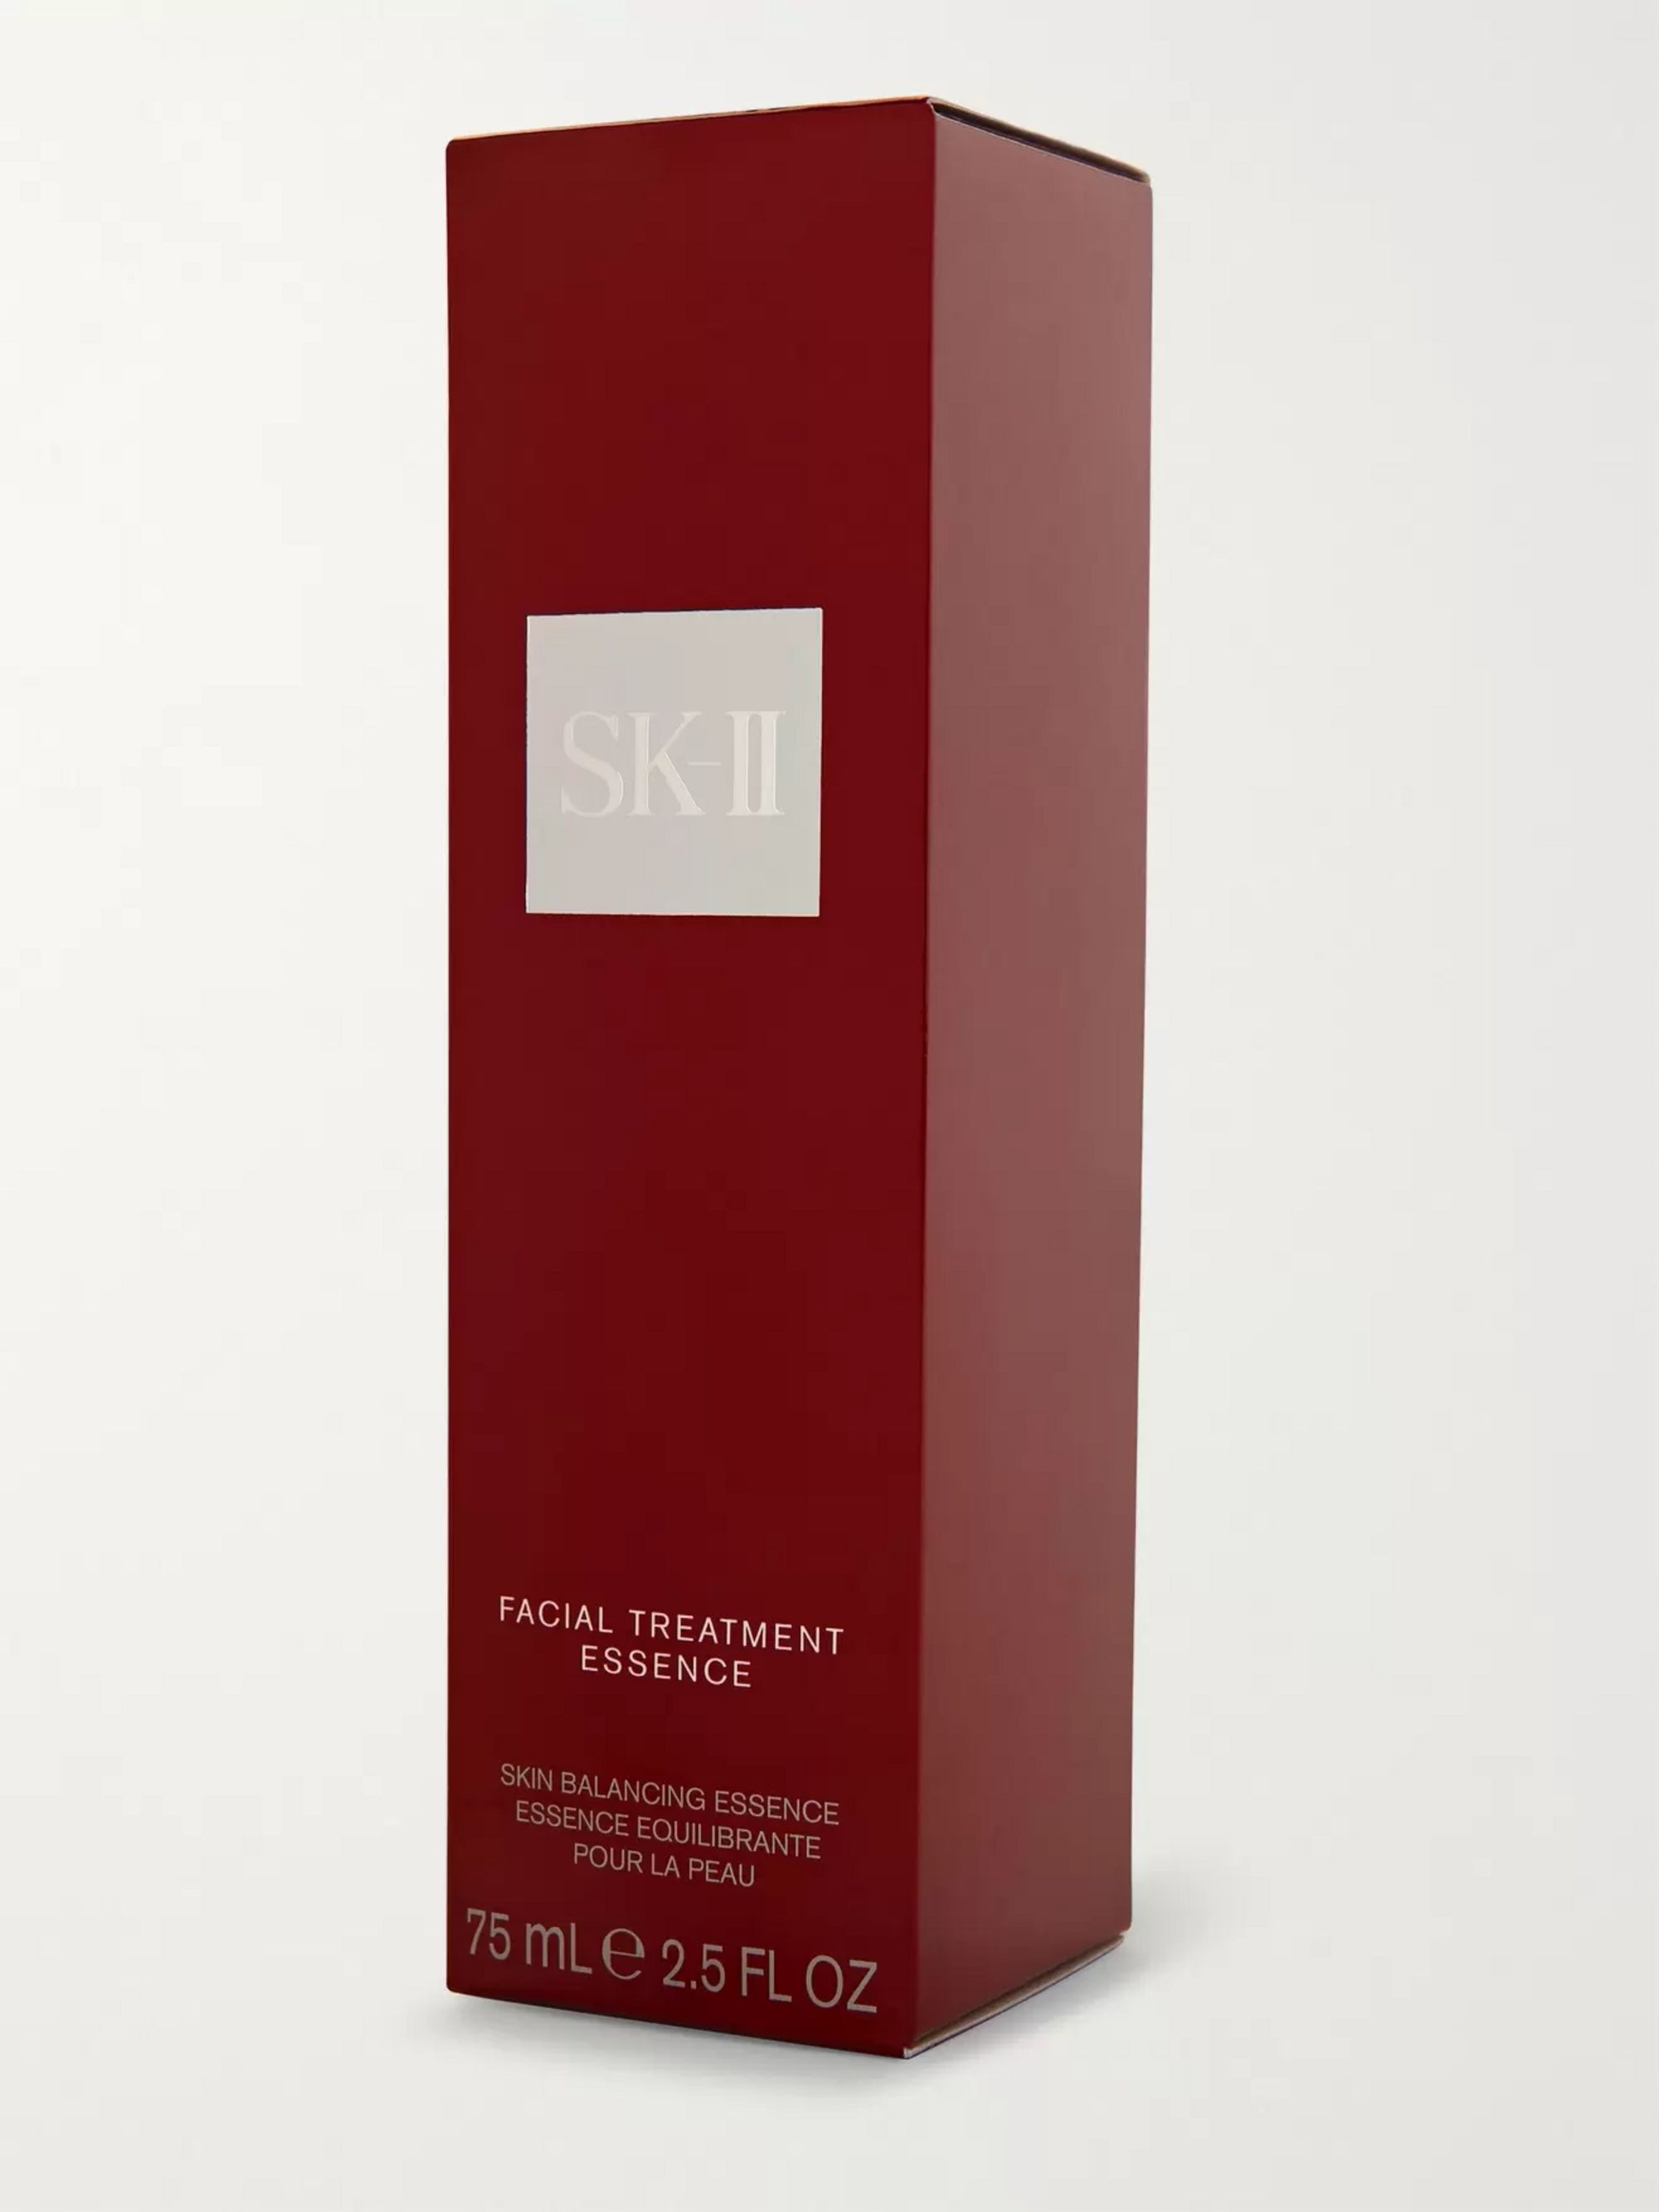 SK-II Facial Treatment Essence, 75ml